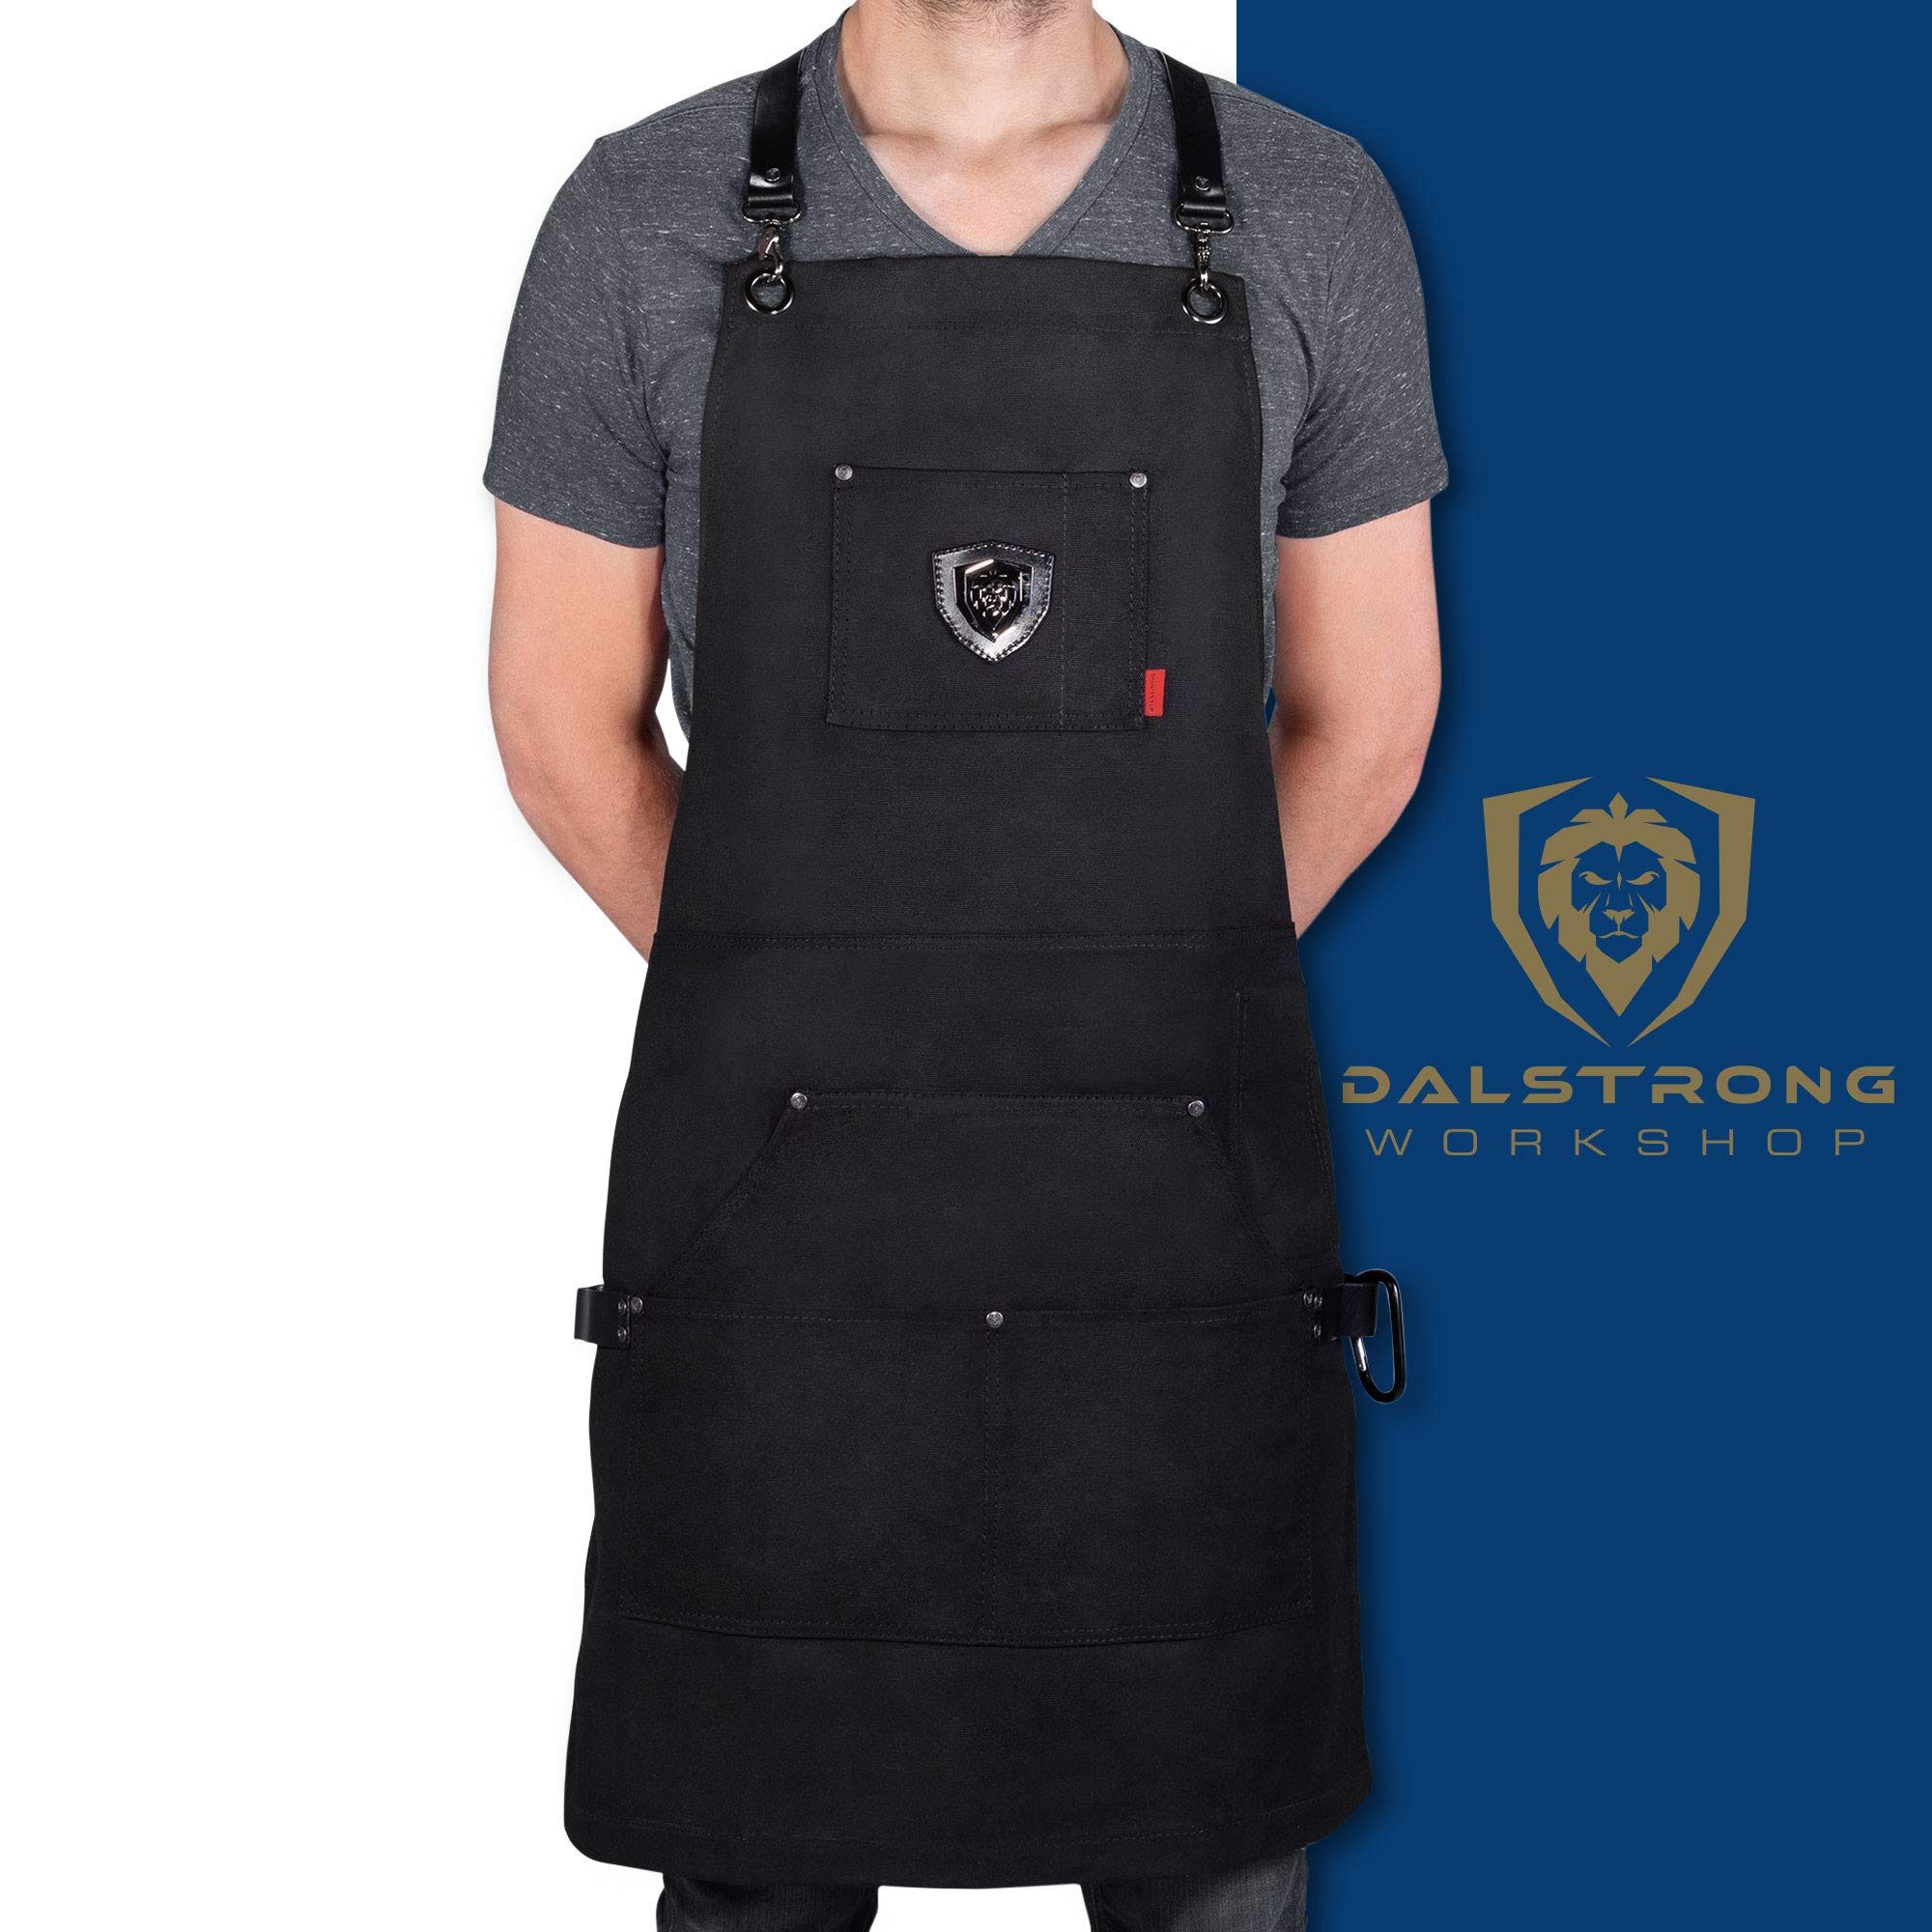 Dalstrong Professional Chef's Kitchen Apron - Sous Team 6'' - Heavy Duty Waxed Canvas - 5 Storage Pockets + Towel & Tong Loop - Liquid Repellent Coating - Genuine Leather Accents - Adjustable Straps